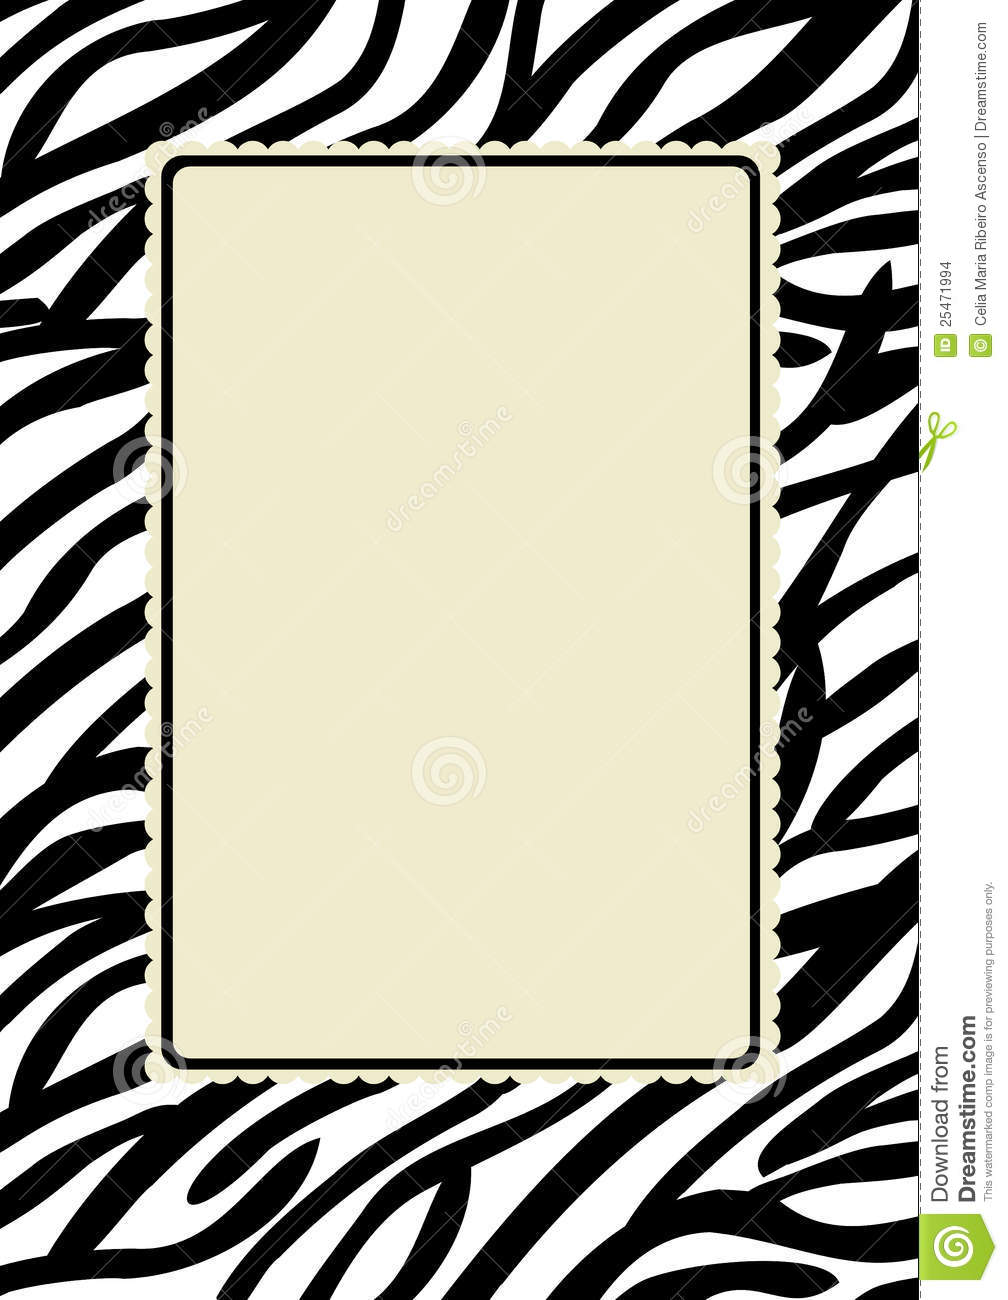 zebra print frame stock illustration image of